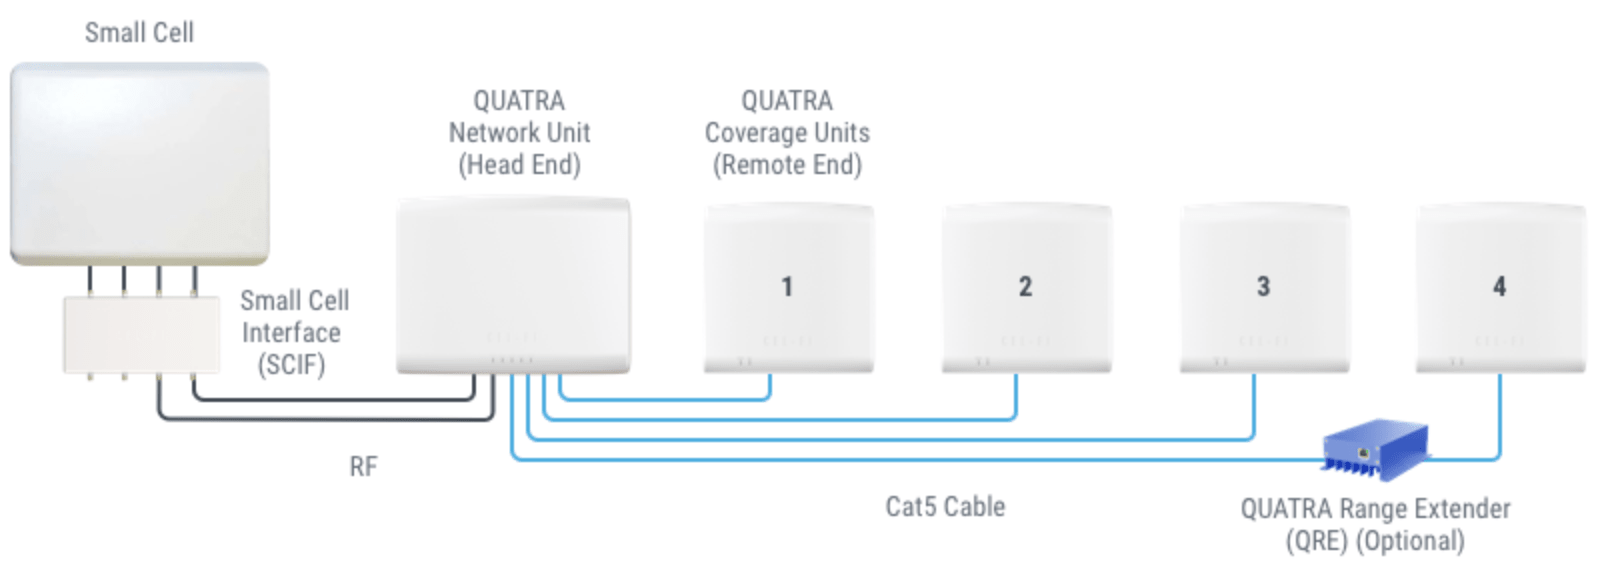 QUATRA 2000 Small Cell installation configuration / set-up